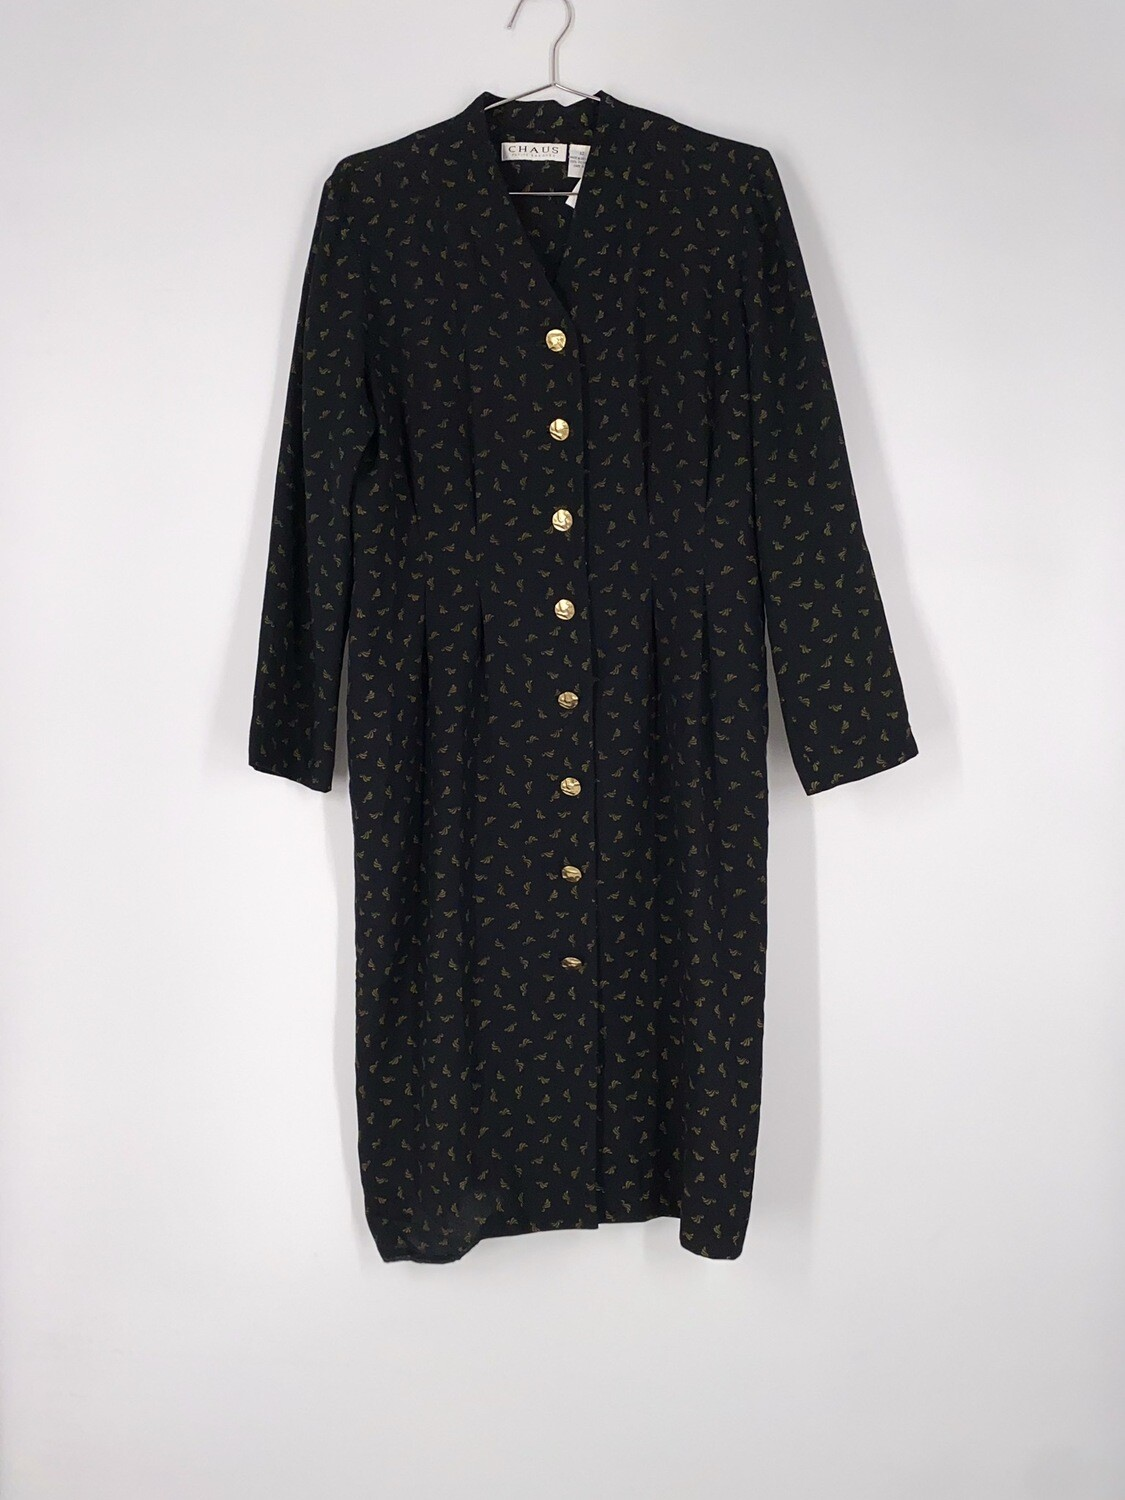 Printed Button Front Dress Size L